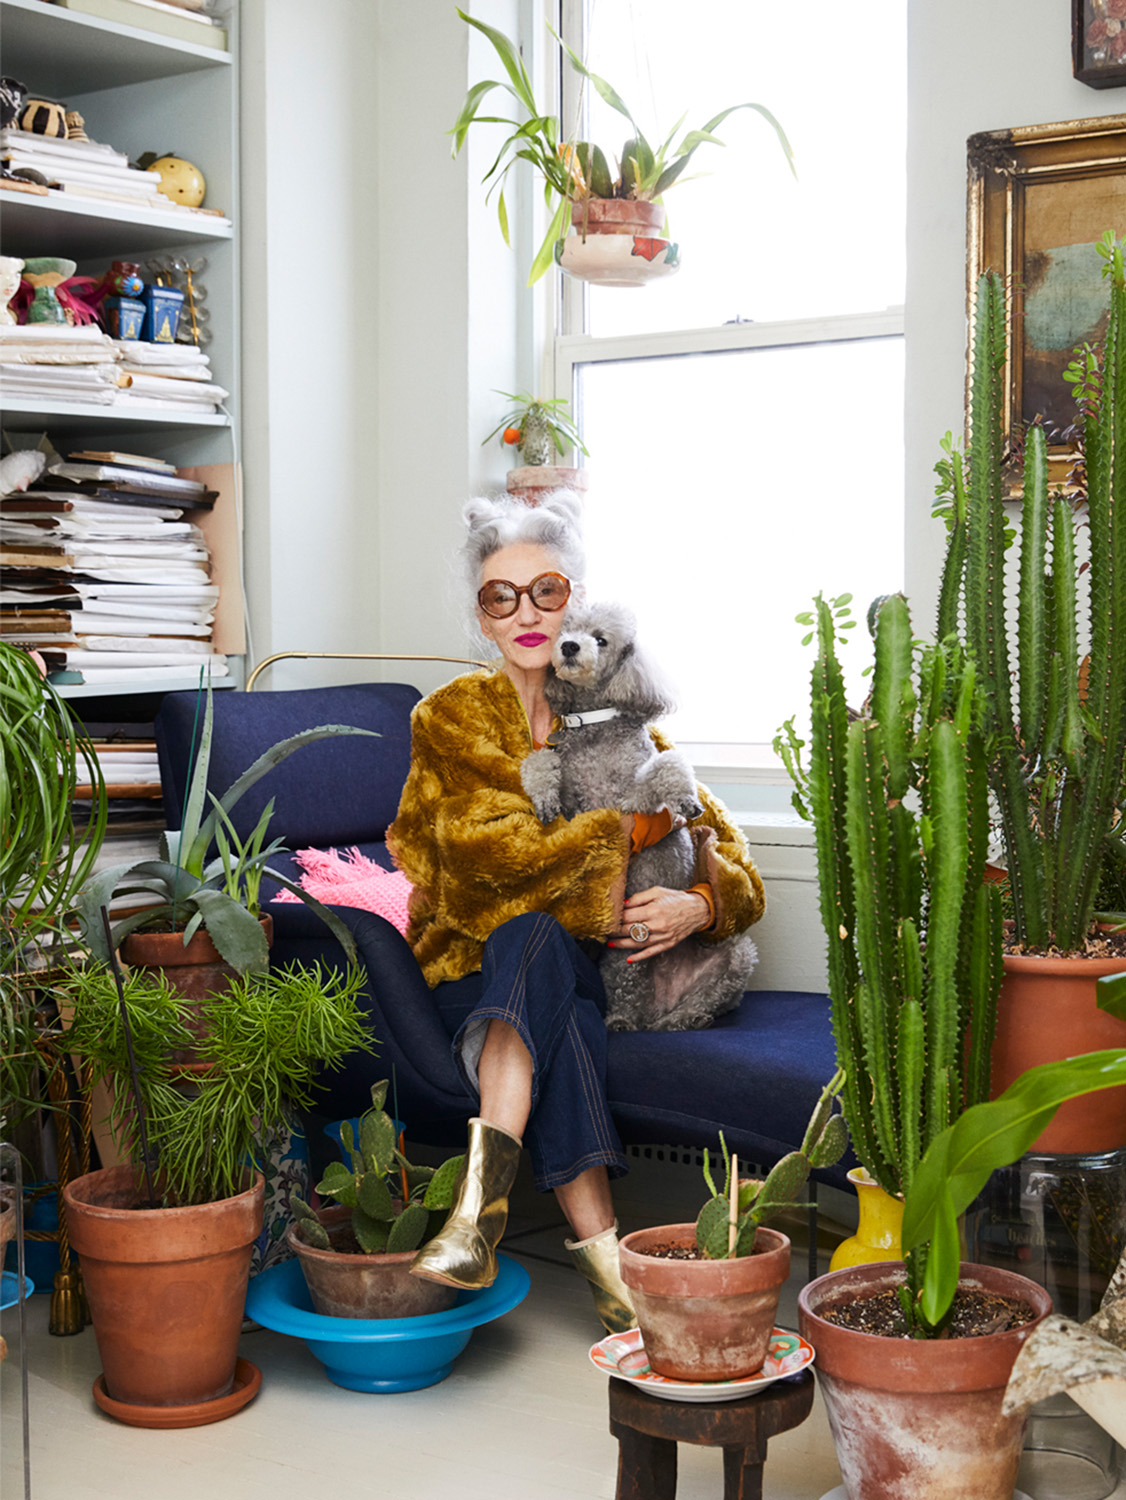 Linda Rodin and Winks/Four & Sons